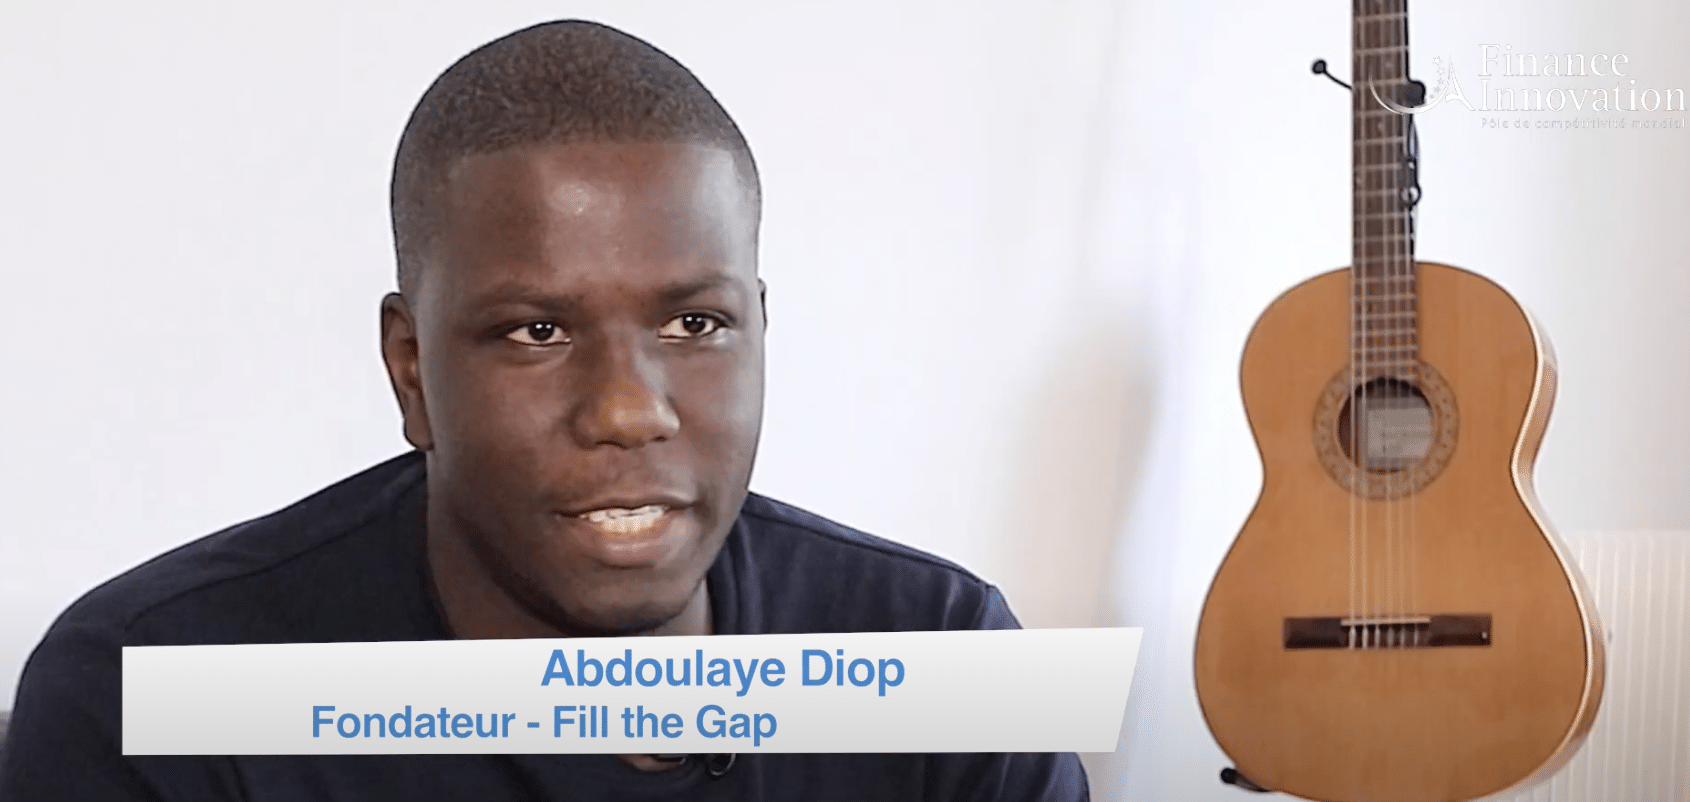 Abdoulaye Diop Fill the Gap